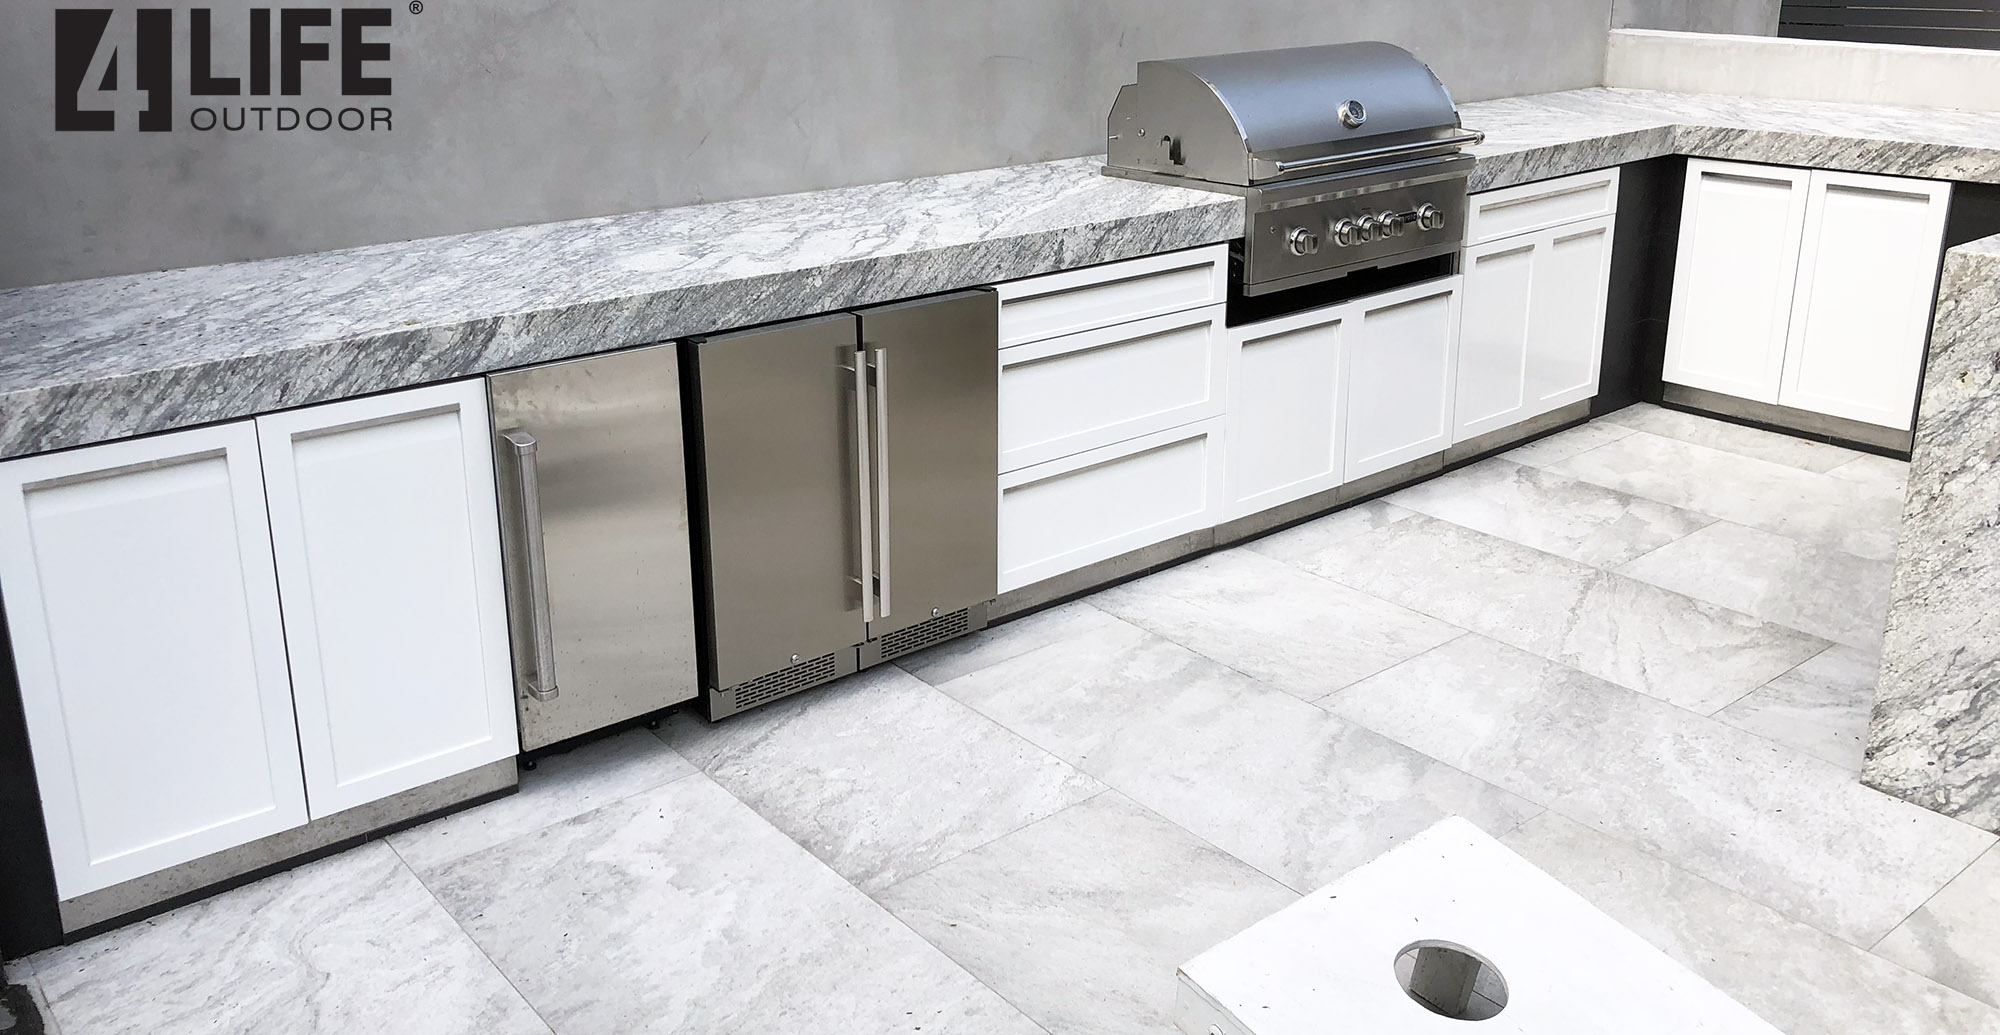 4 Life Outdoor Kitchen white Stainless steel cabinets with Big stone countertop